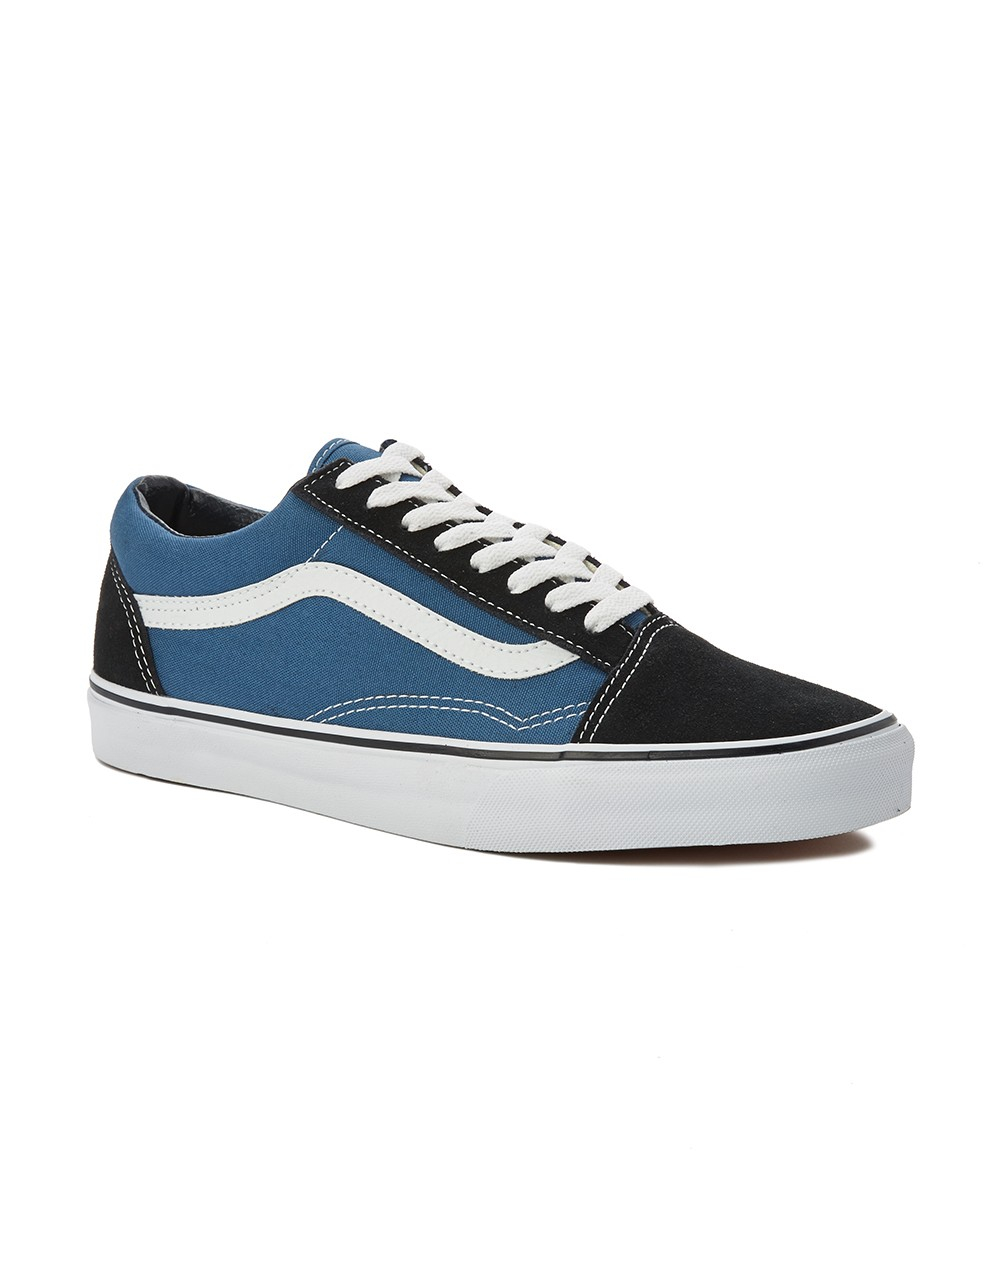 lyst vans old skool round toe canvas sneakers in blue. Black Bedroom Furniture Sets. Home Design Ideas